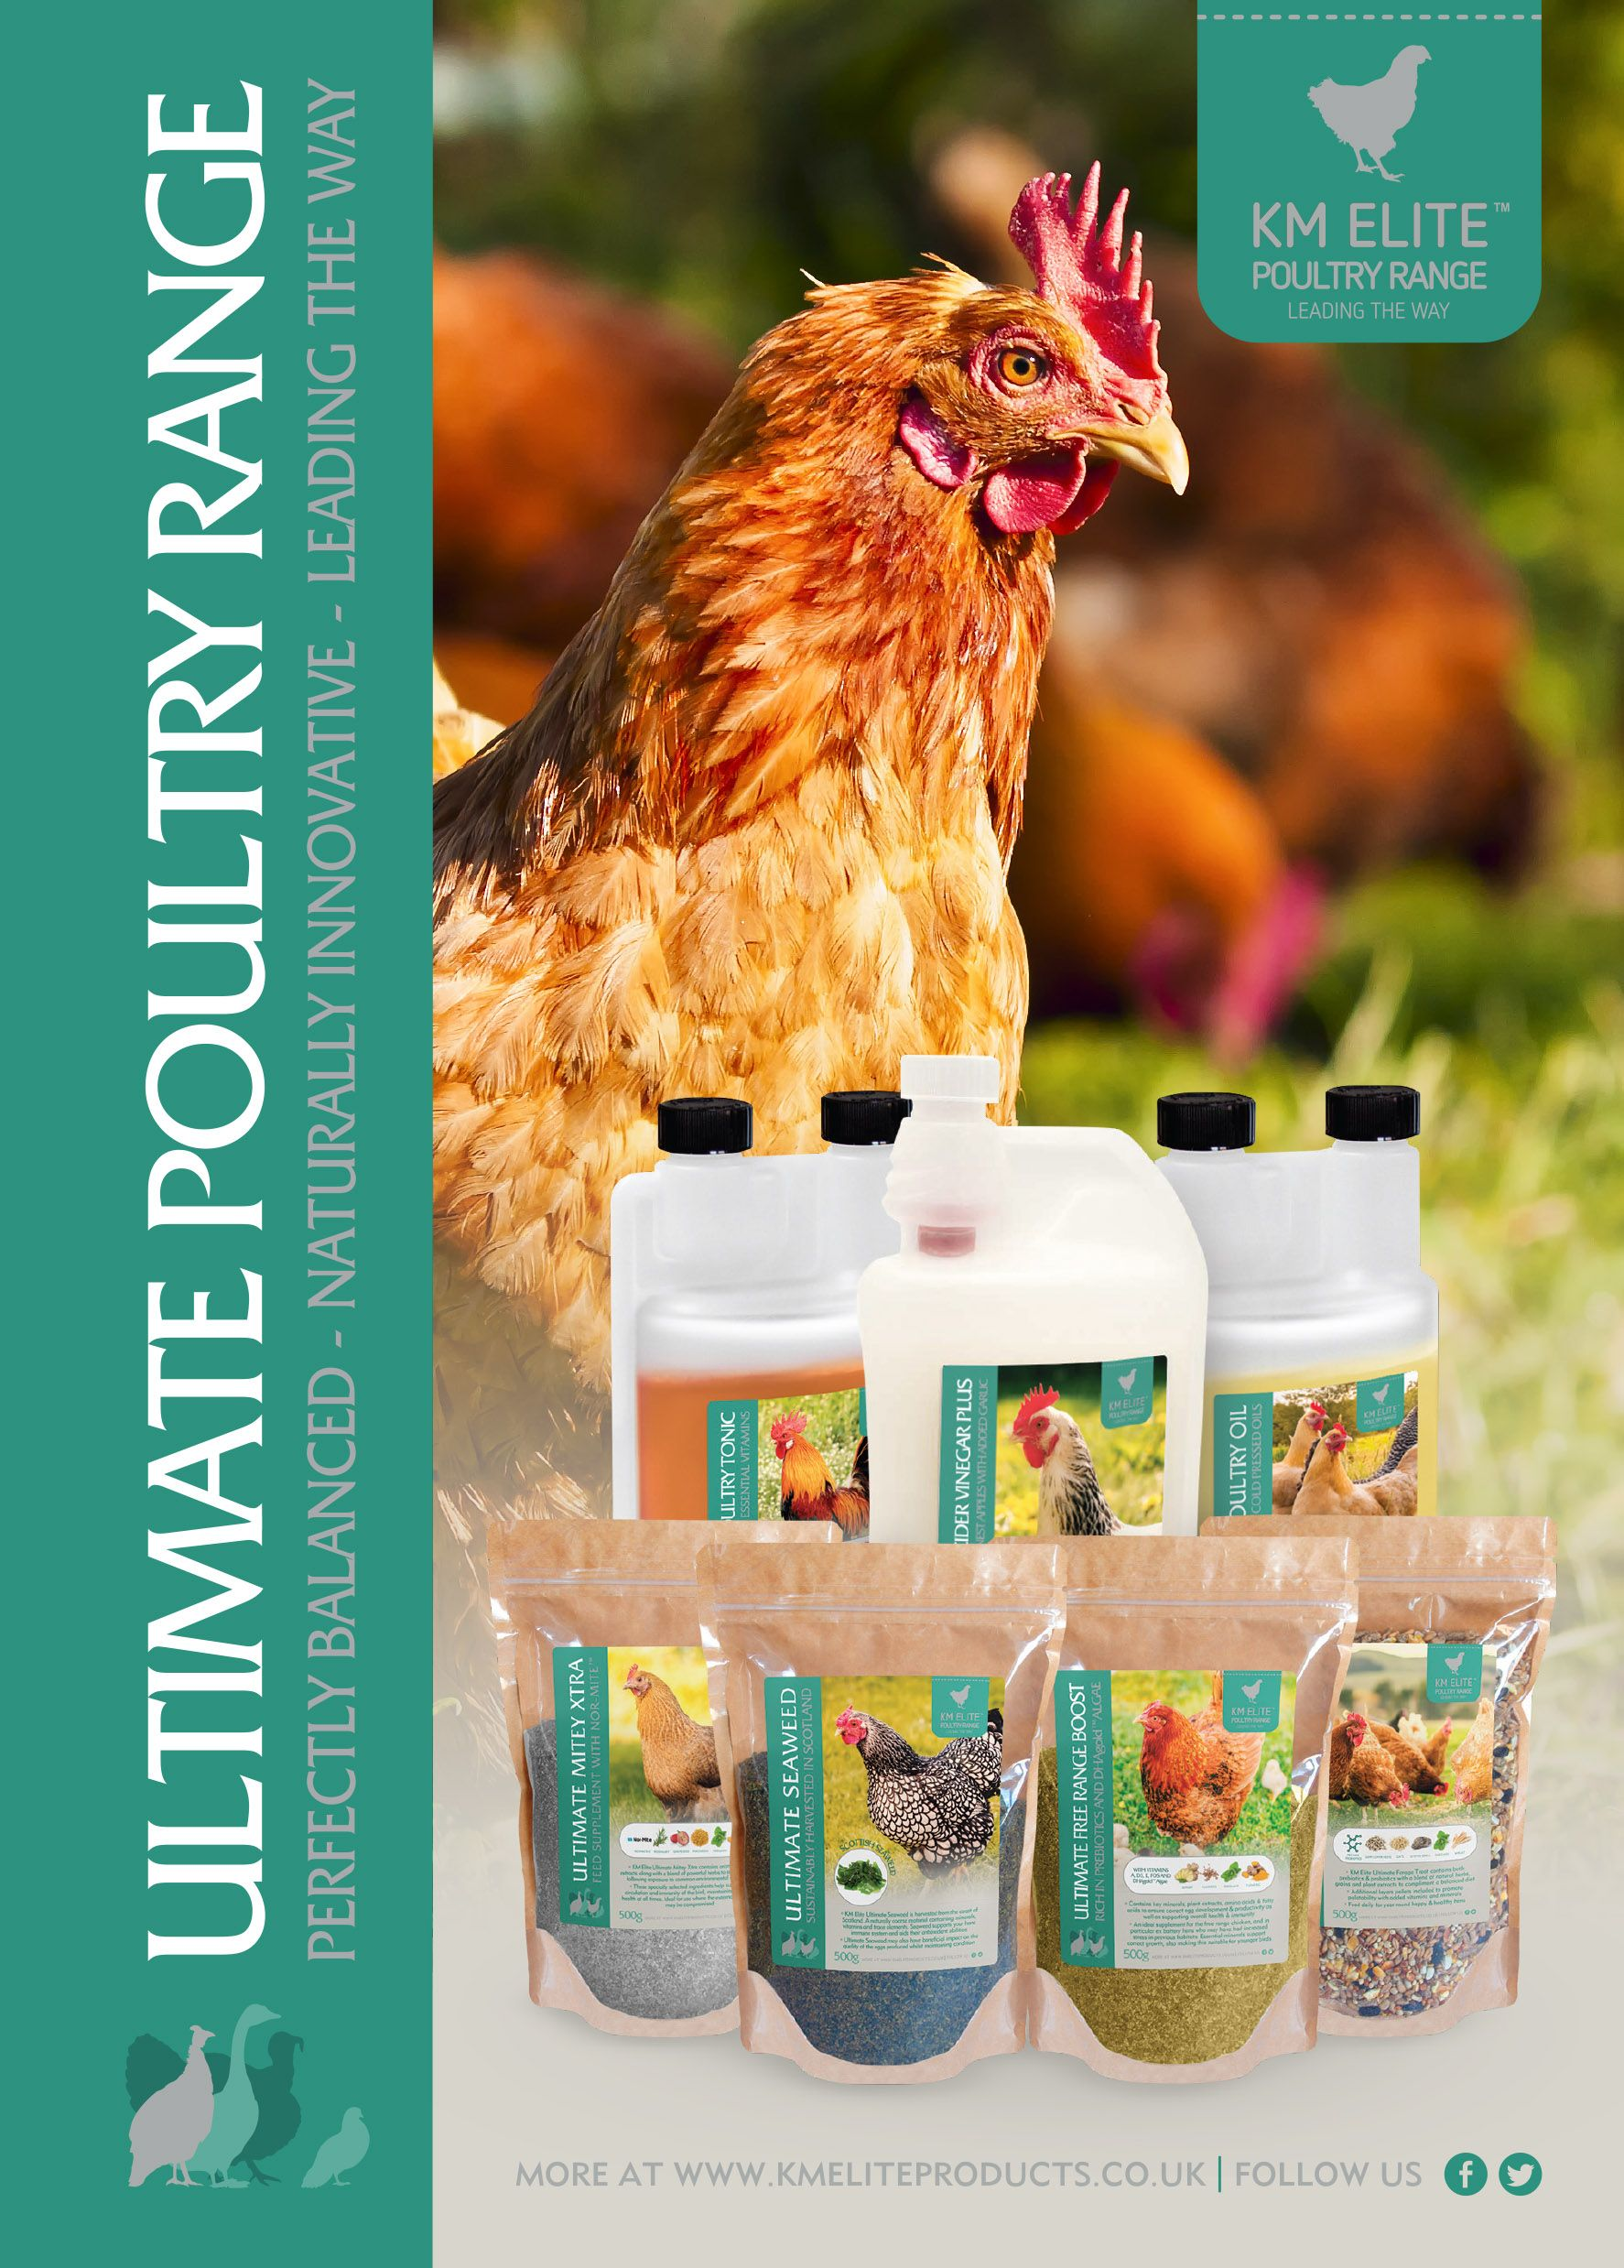 ULTIMATE POULTRY RANGE